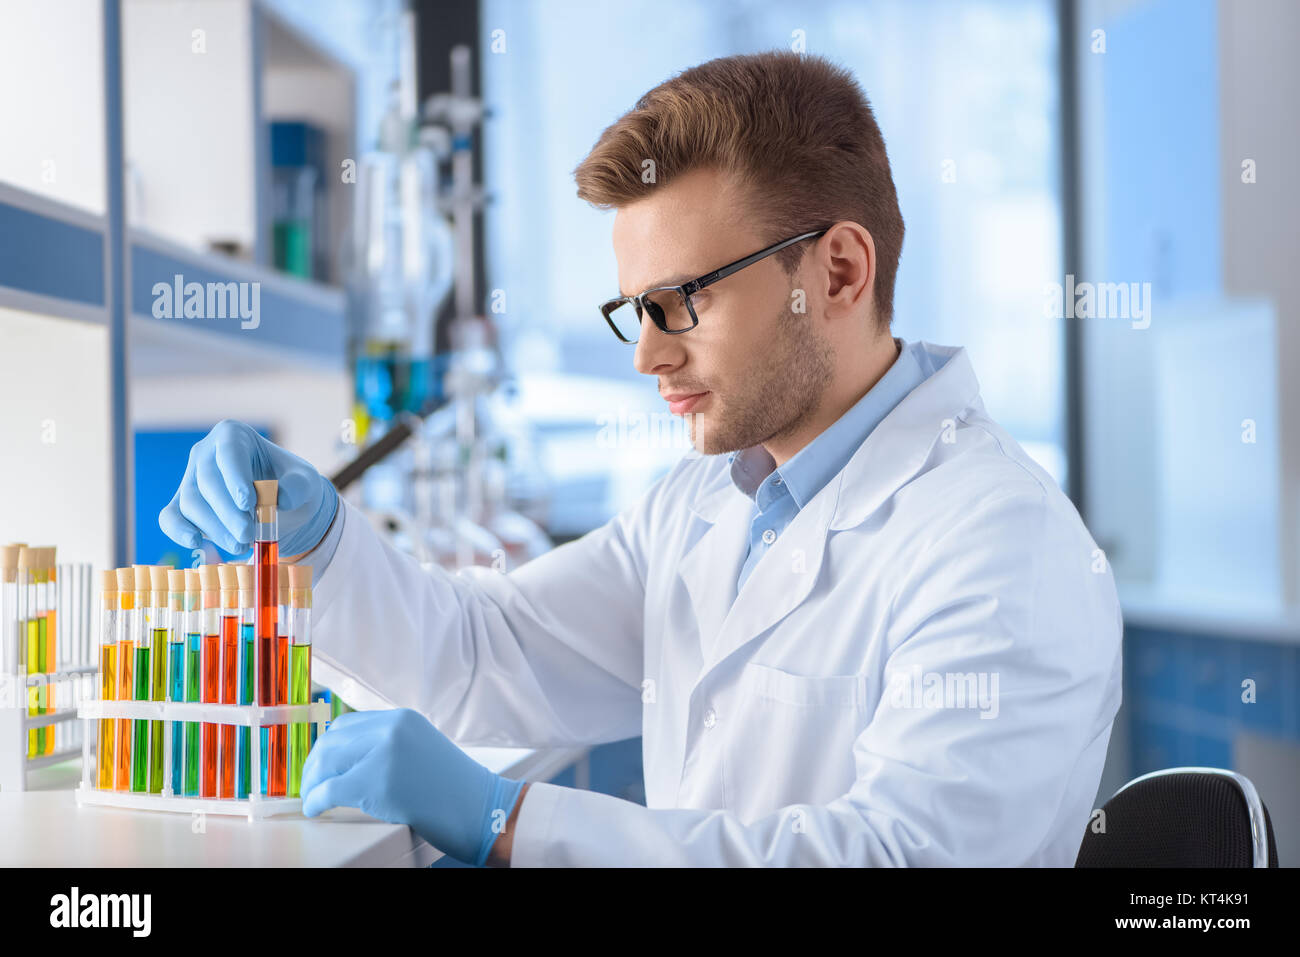 Concentrated scientist in eyeglasses working with test tubes in lab - Stock Image